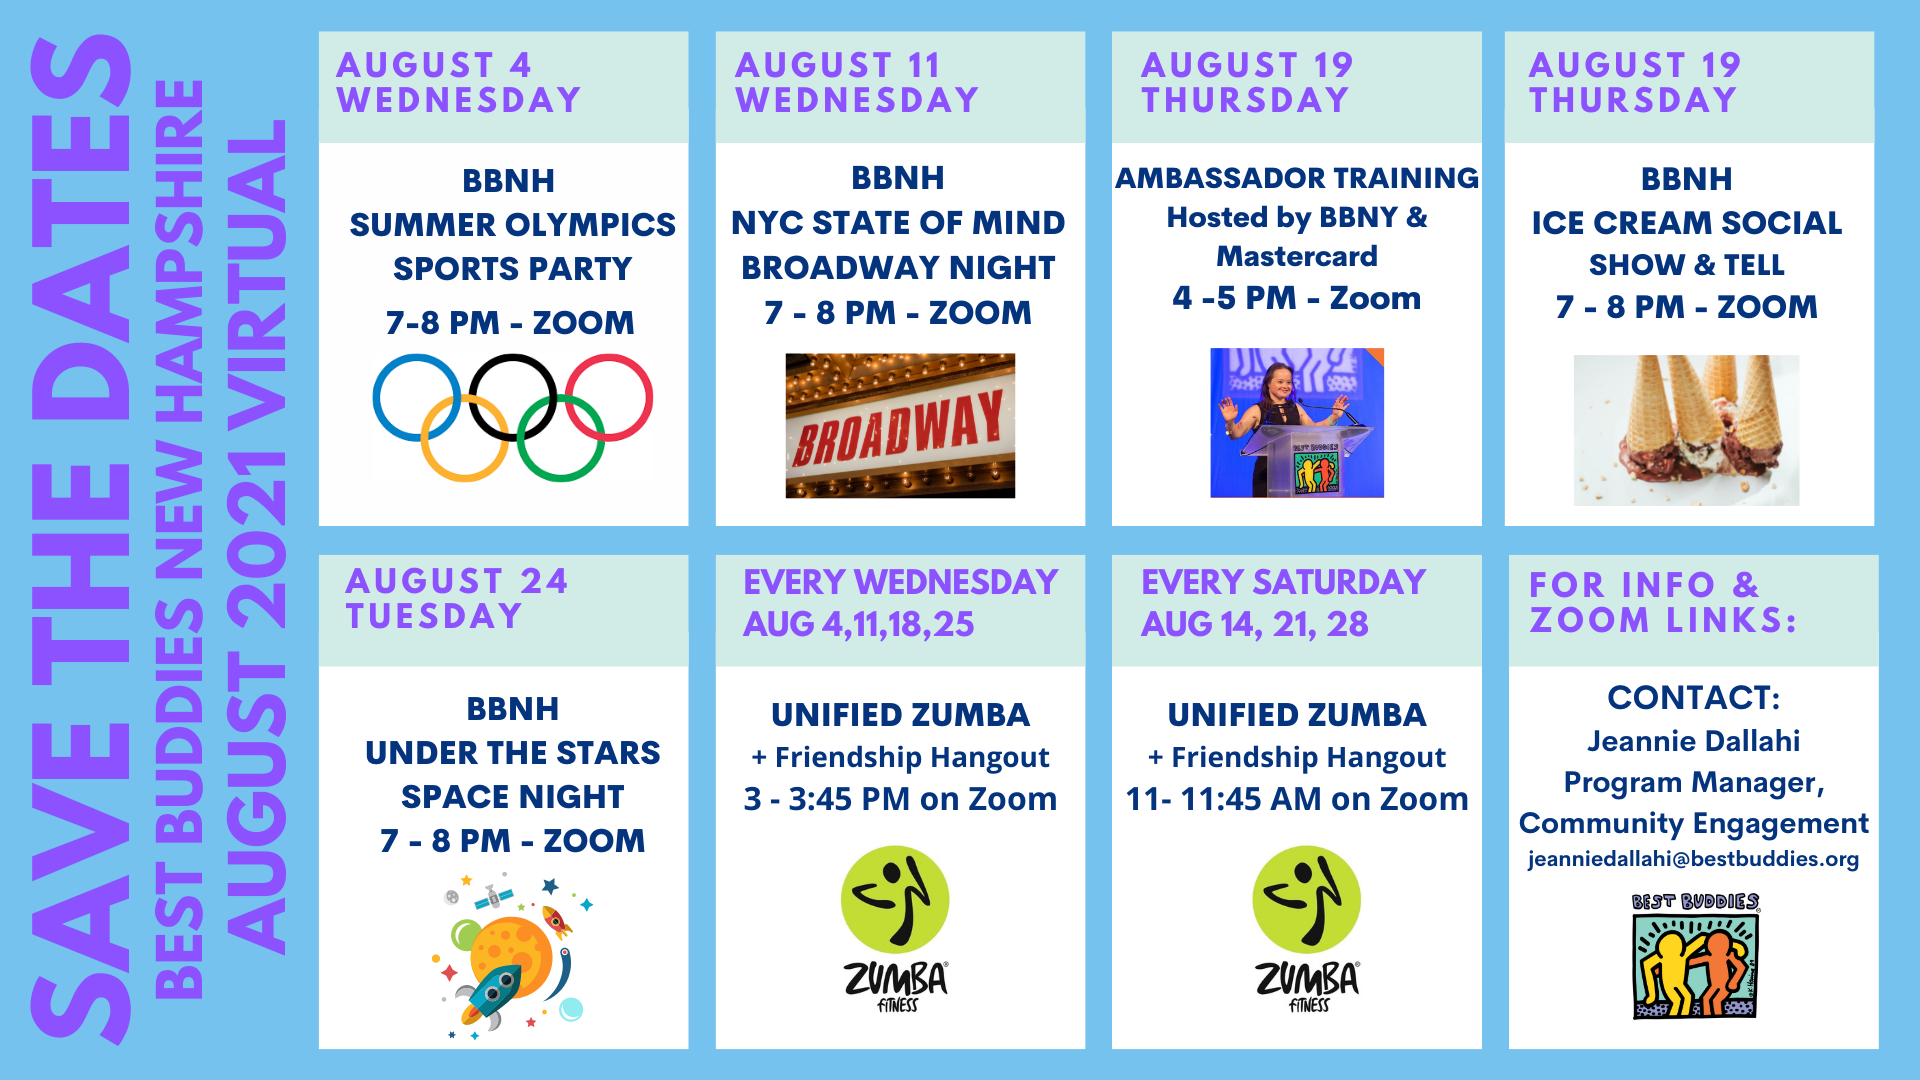 Best Buddies in New Hampshire August Events